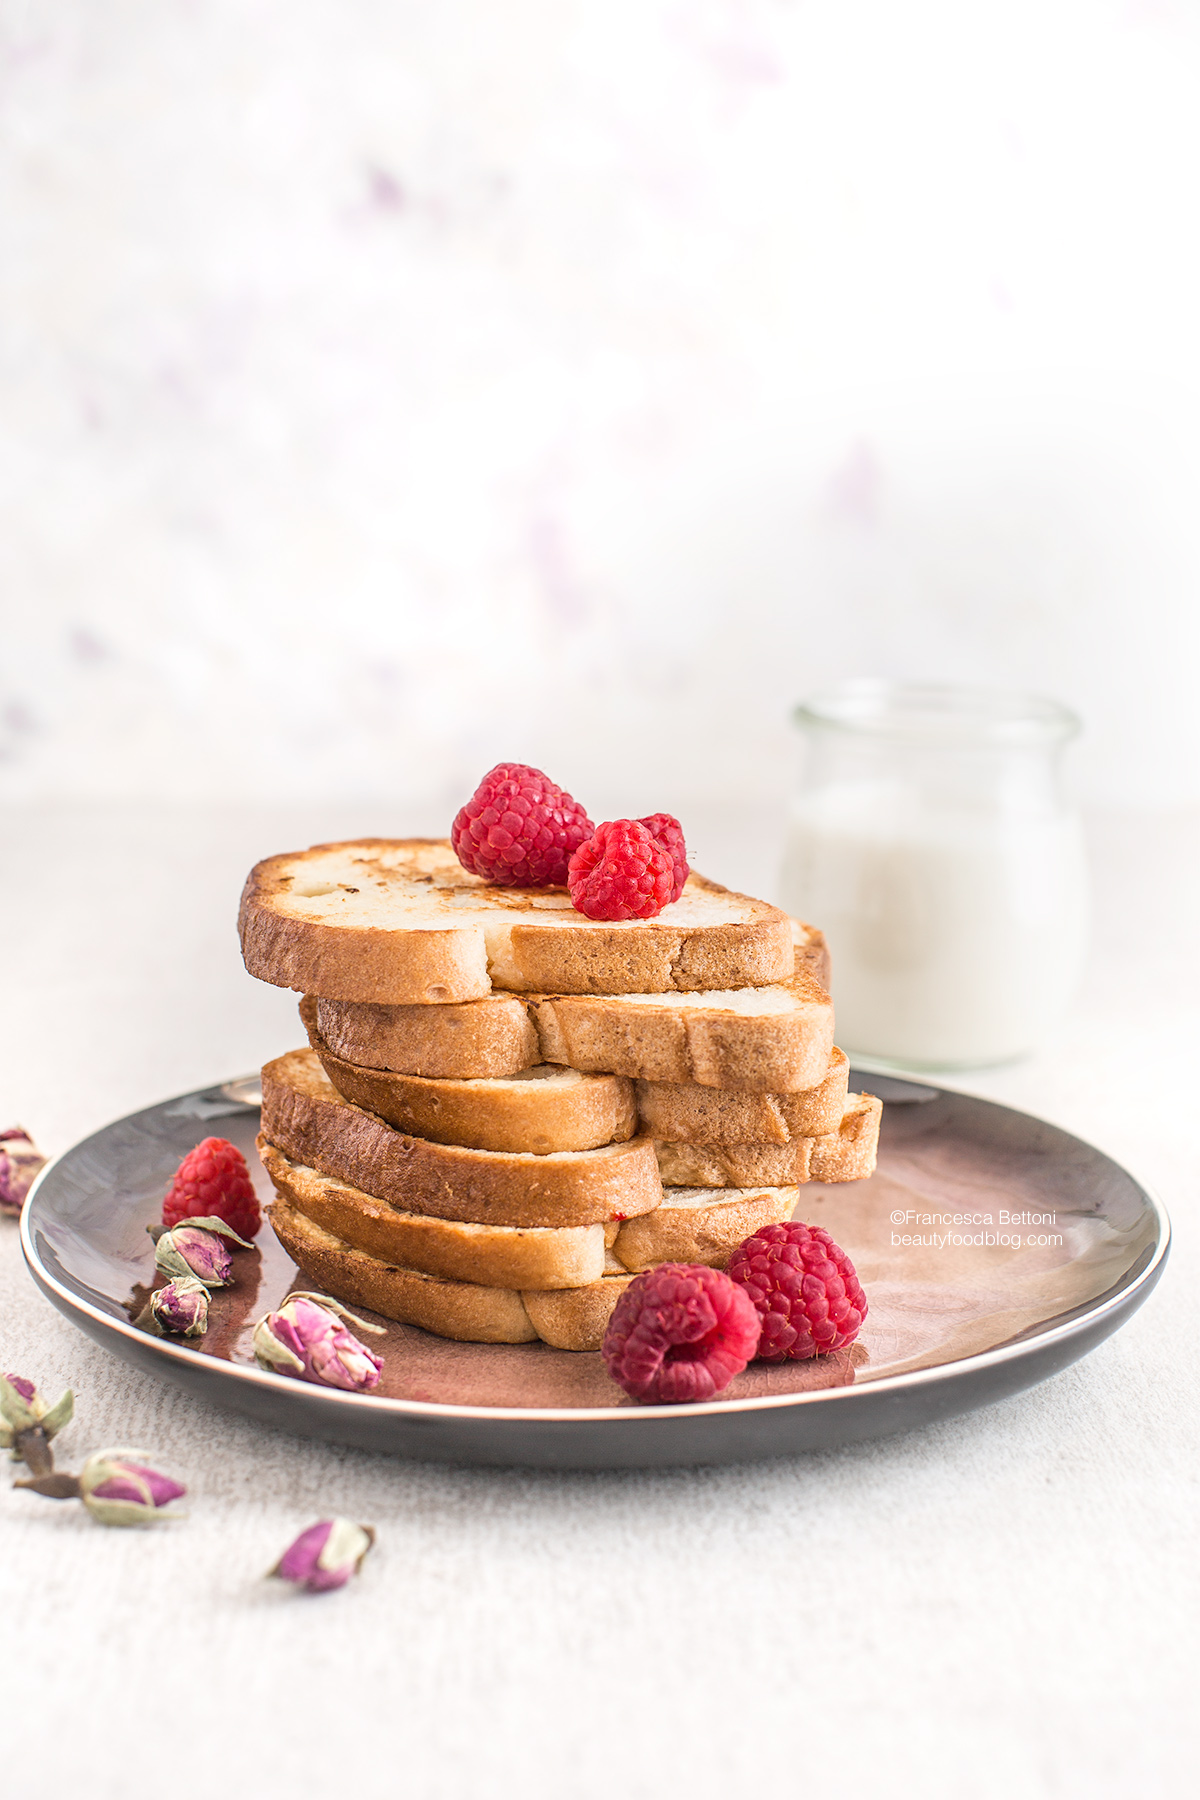 #vegan #glutenfree FRENCH TOAST with coconut whipped cream - FRENCH TOAST #VEGAN SENZA GLUTINE alla vaniglia in padella e al forno